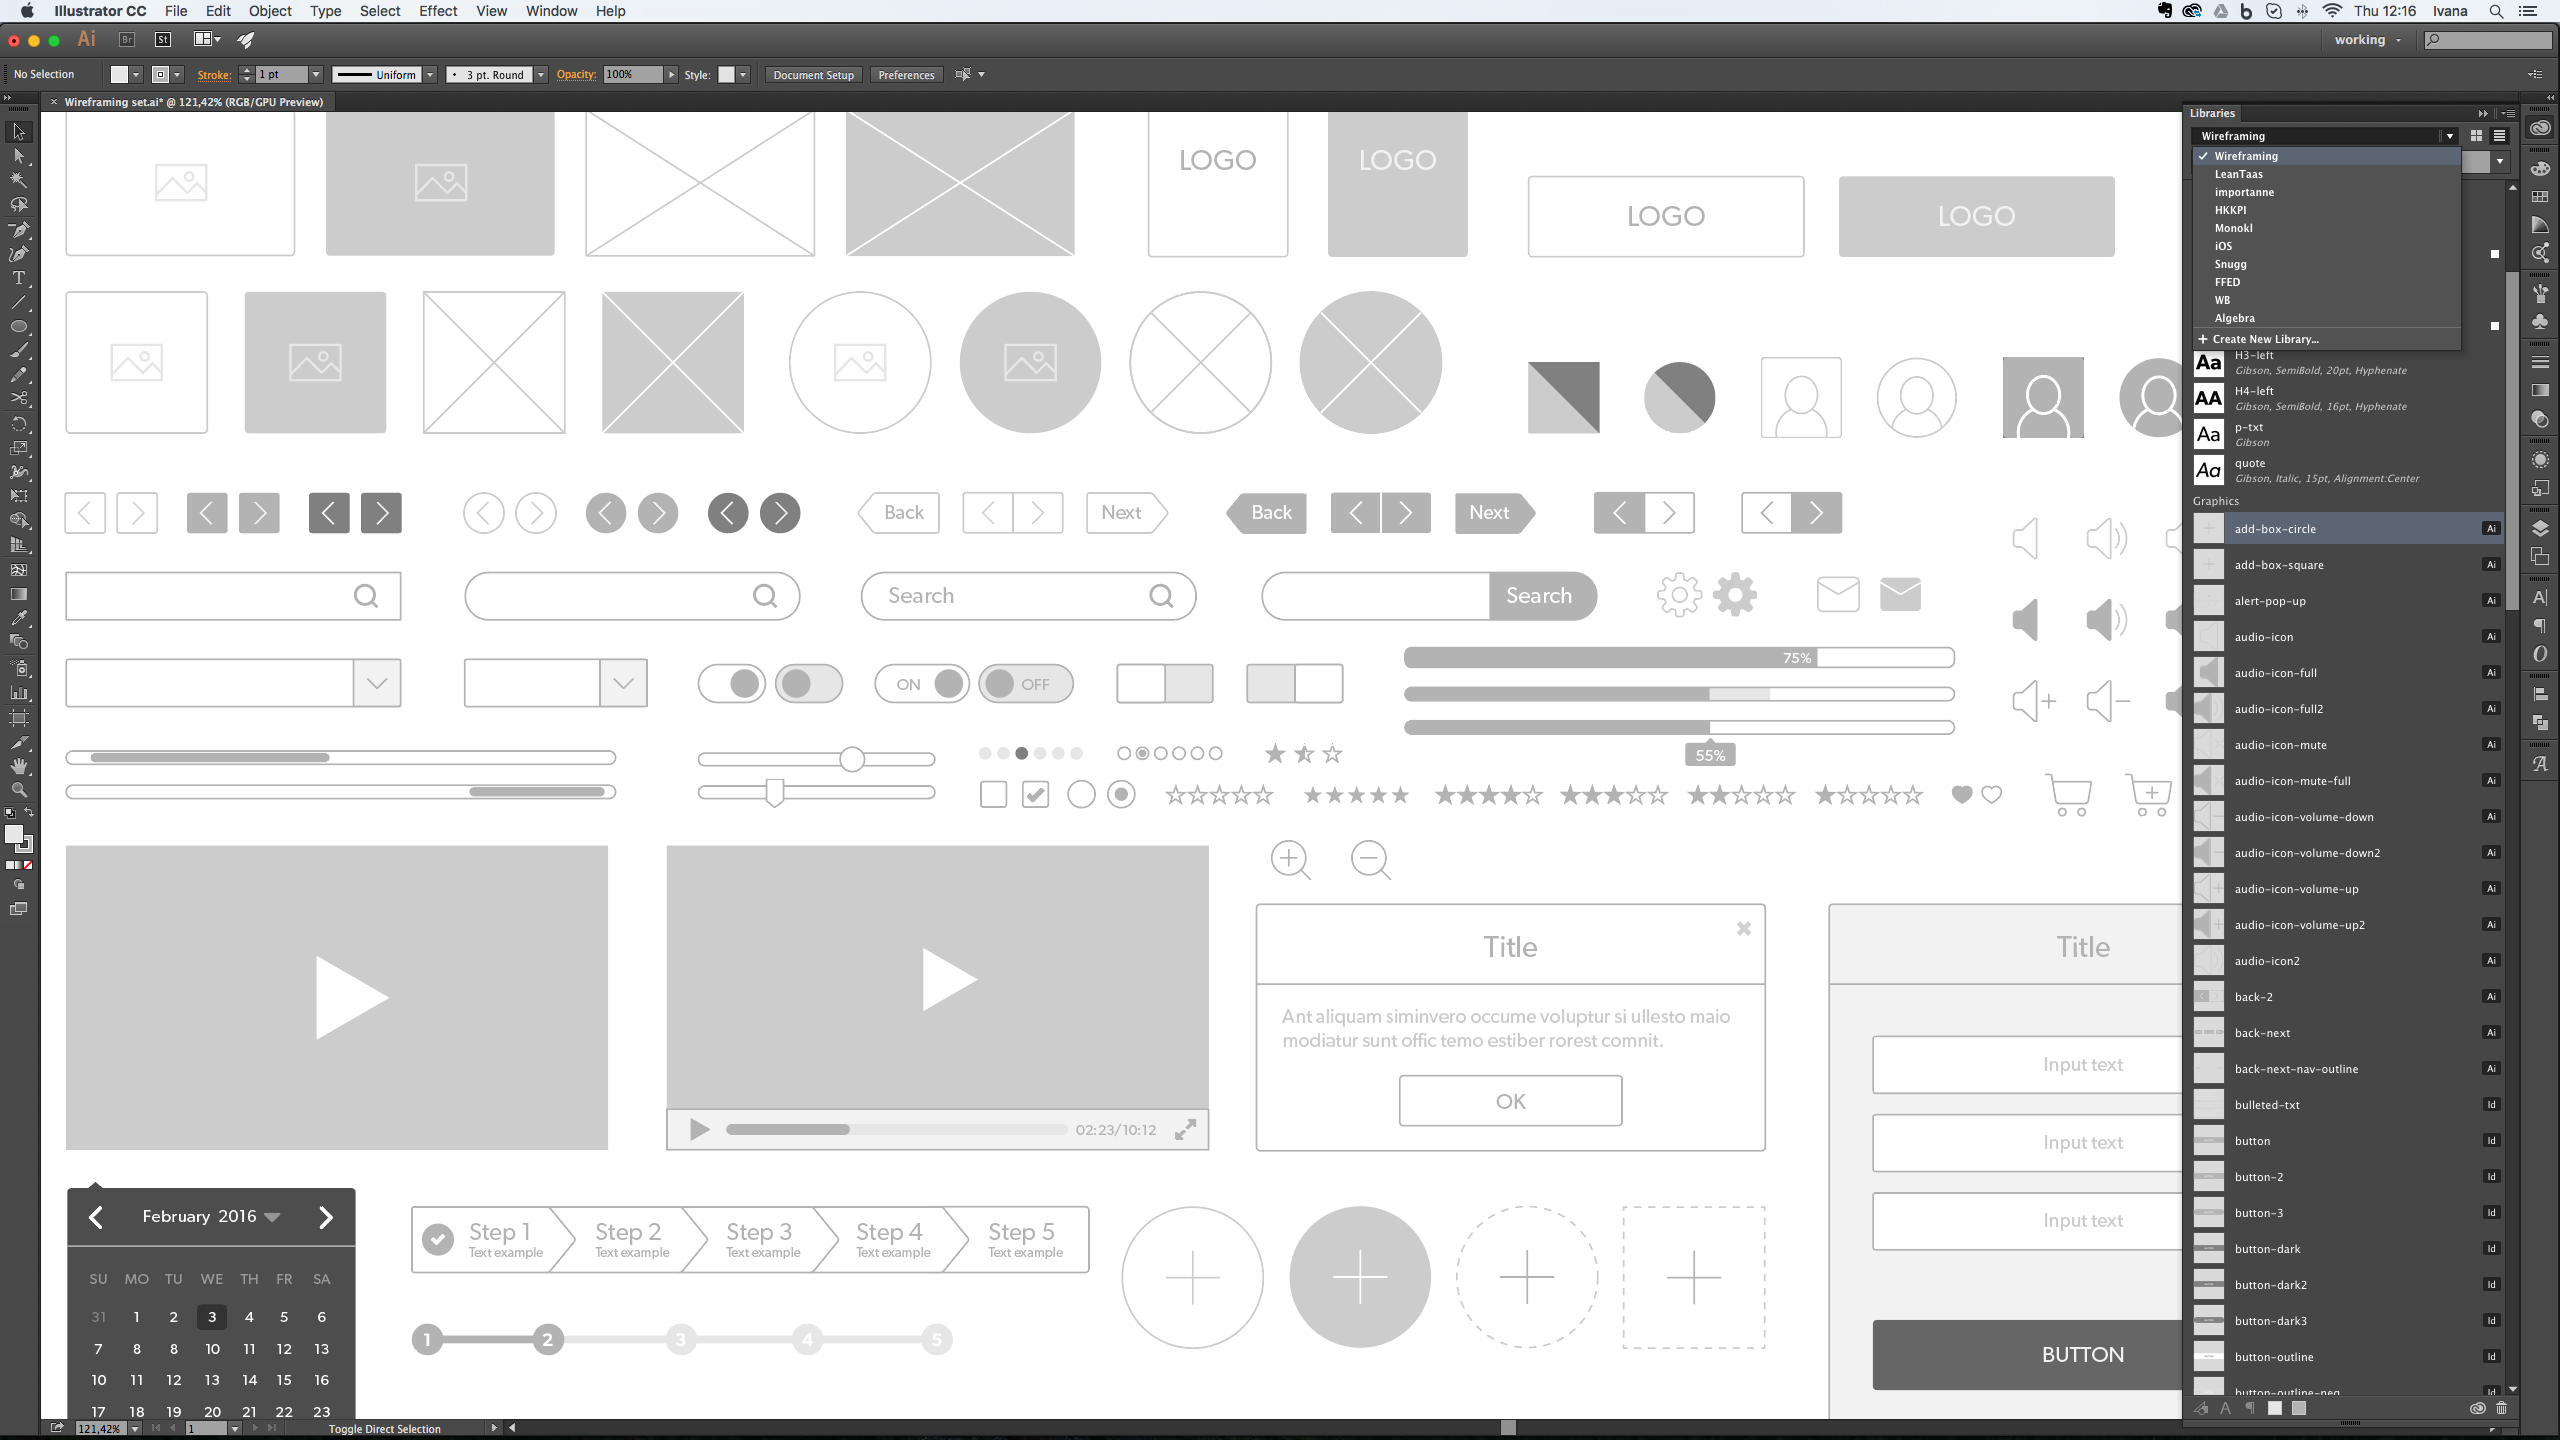 Who Knew Adobe CC Could Wireframe? - Image 3